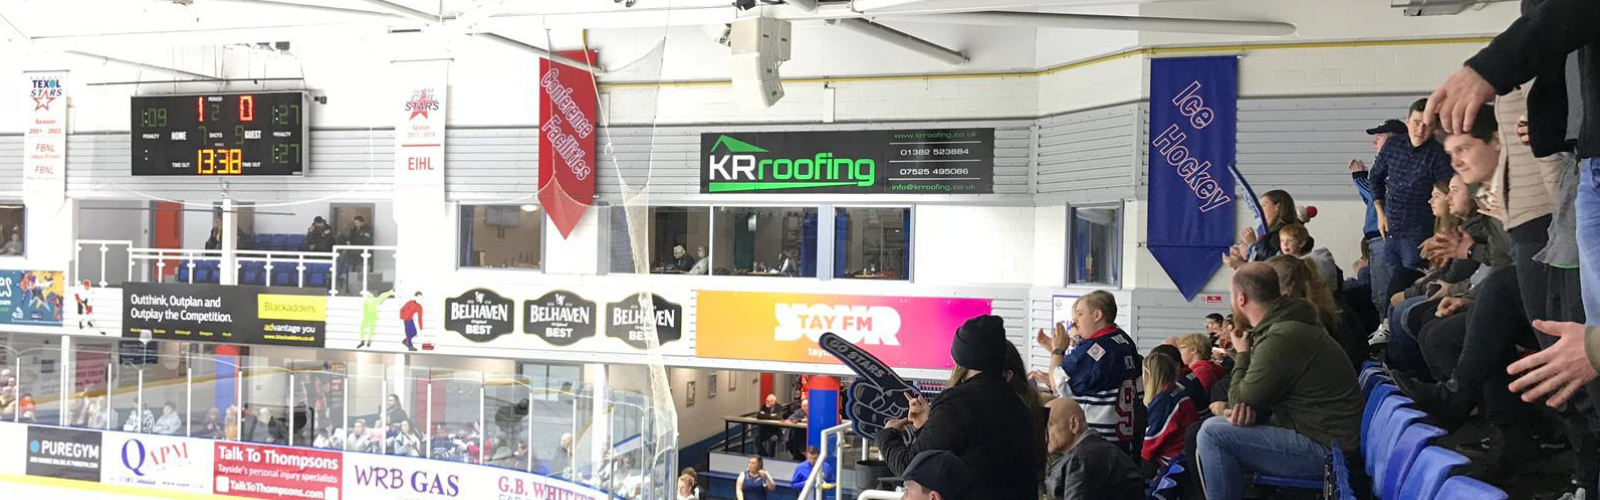 KR Roofing - Community